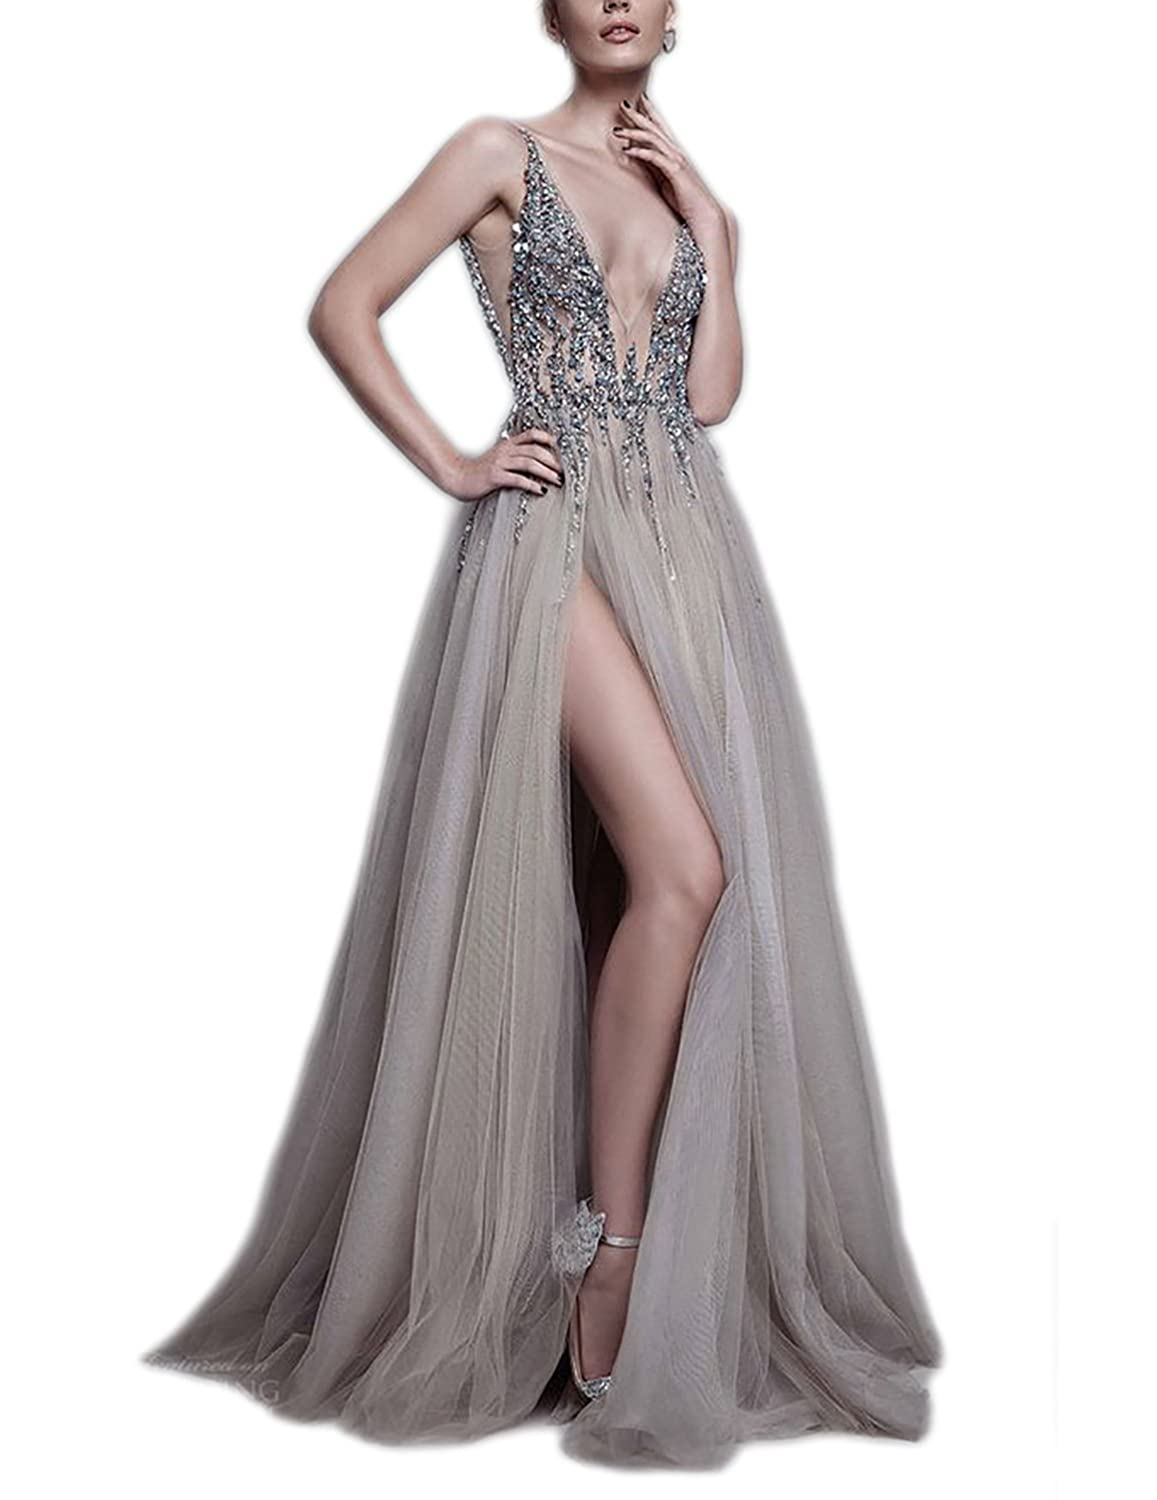 Muisal Women's Deep V Neck Beading Sexy Evening Prom Dress with High Slit N-PM05